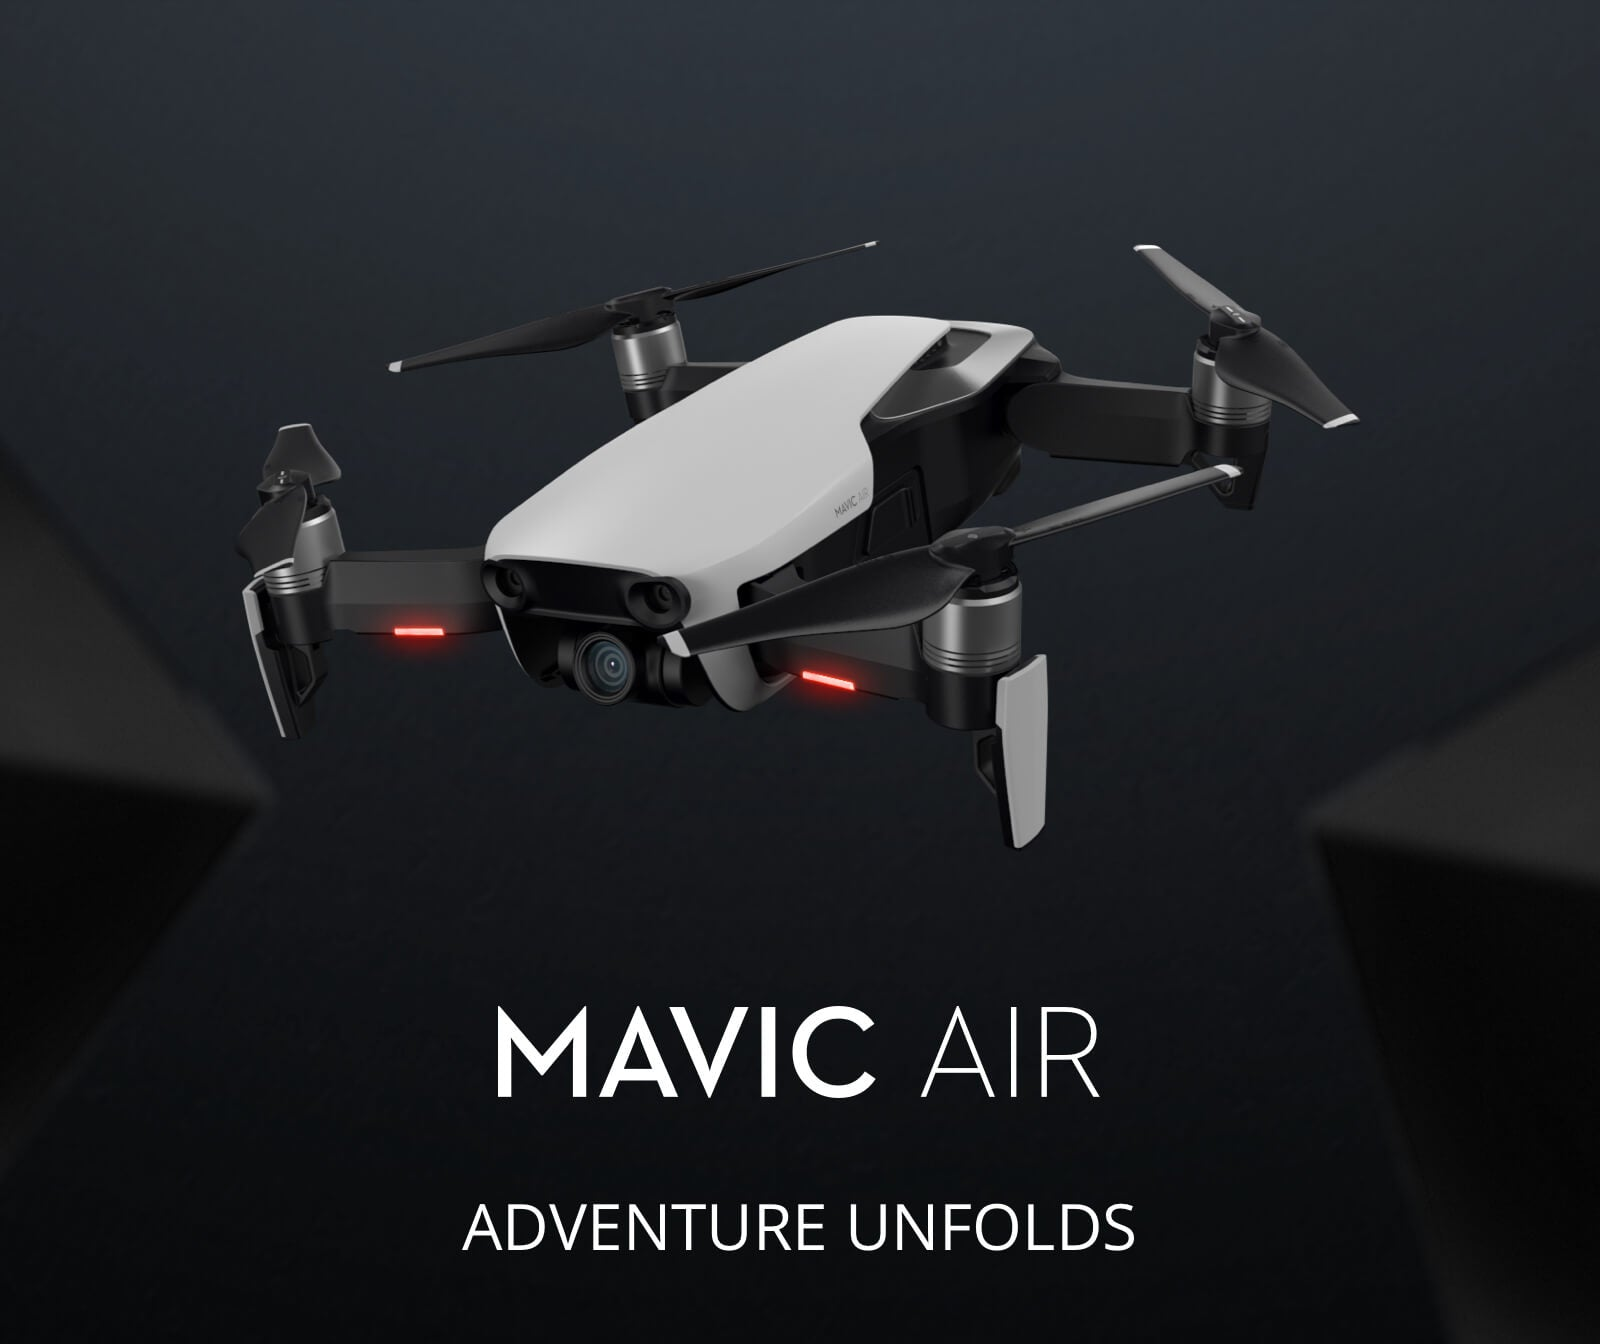 Mavic Air Adventure Unfolds